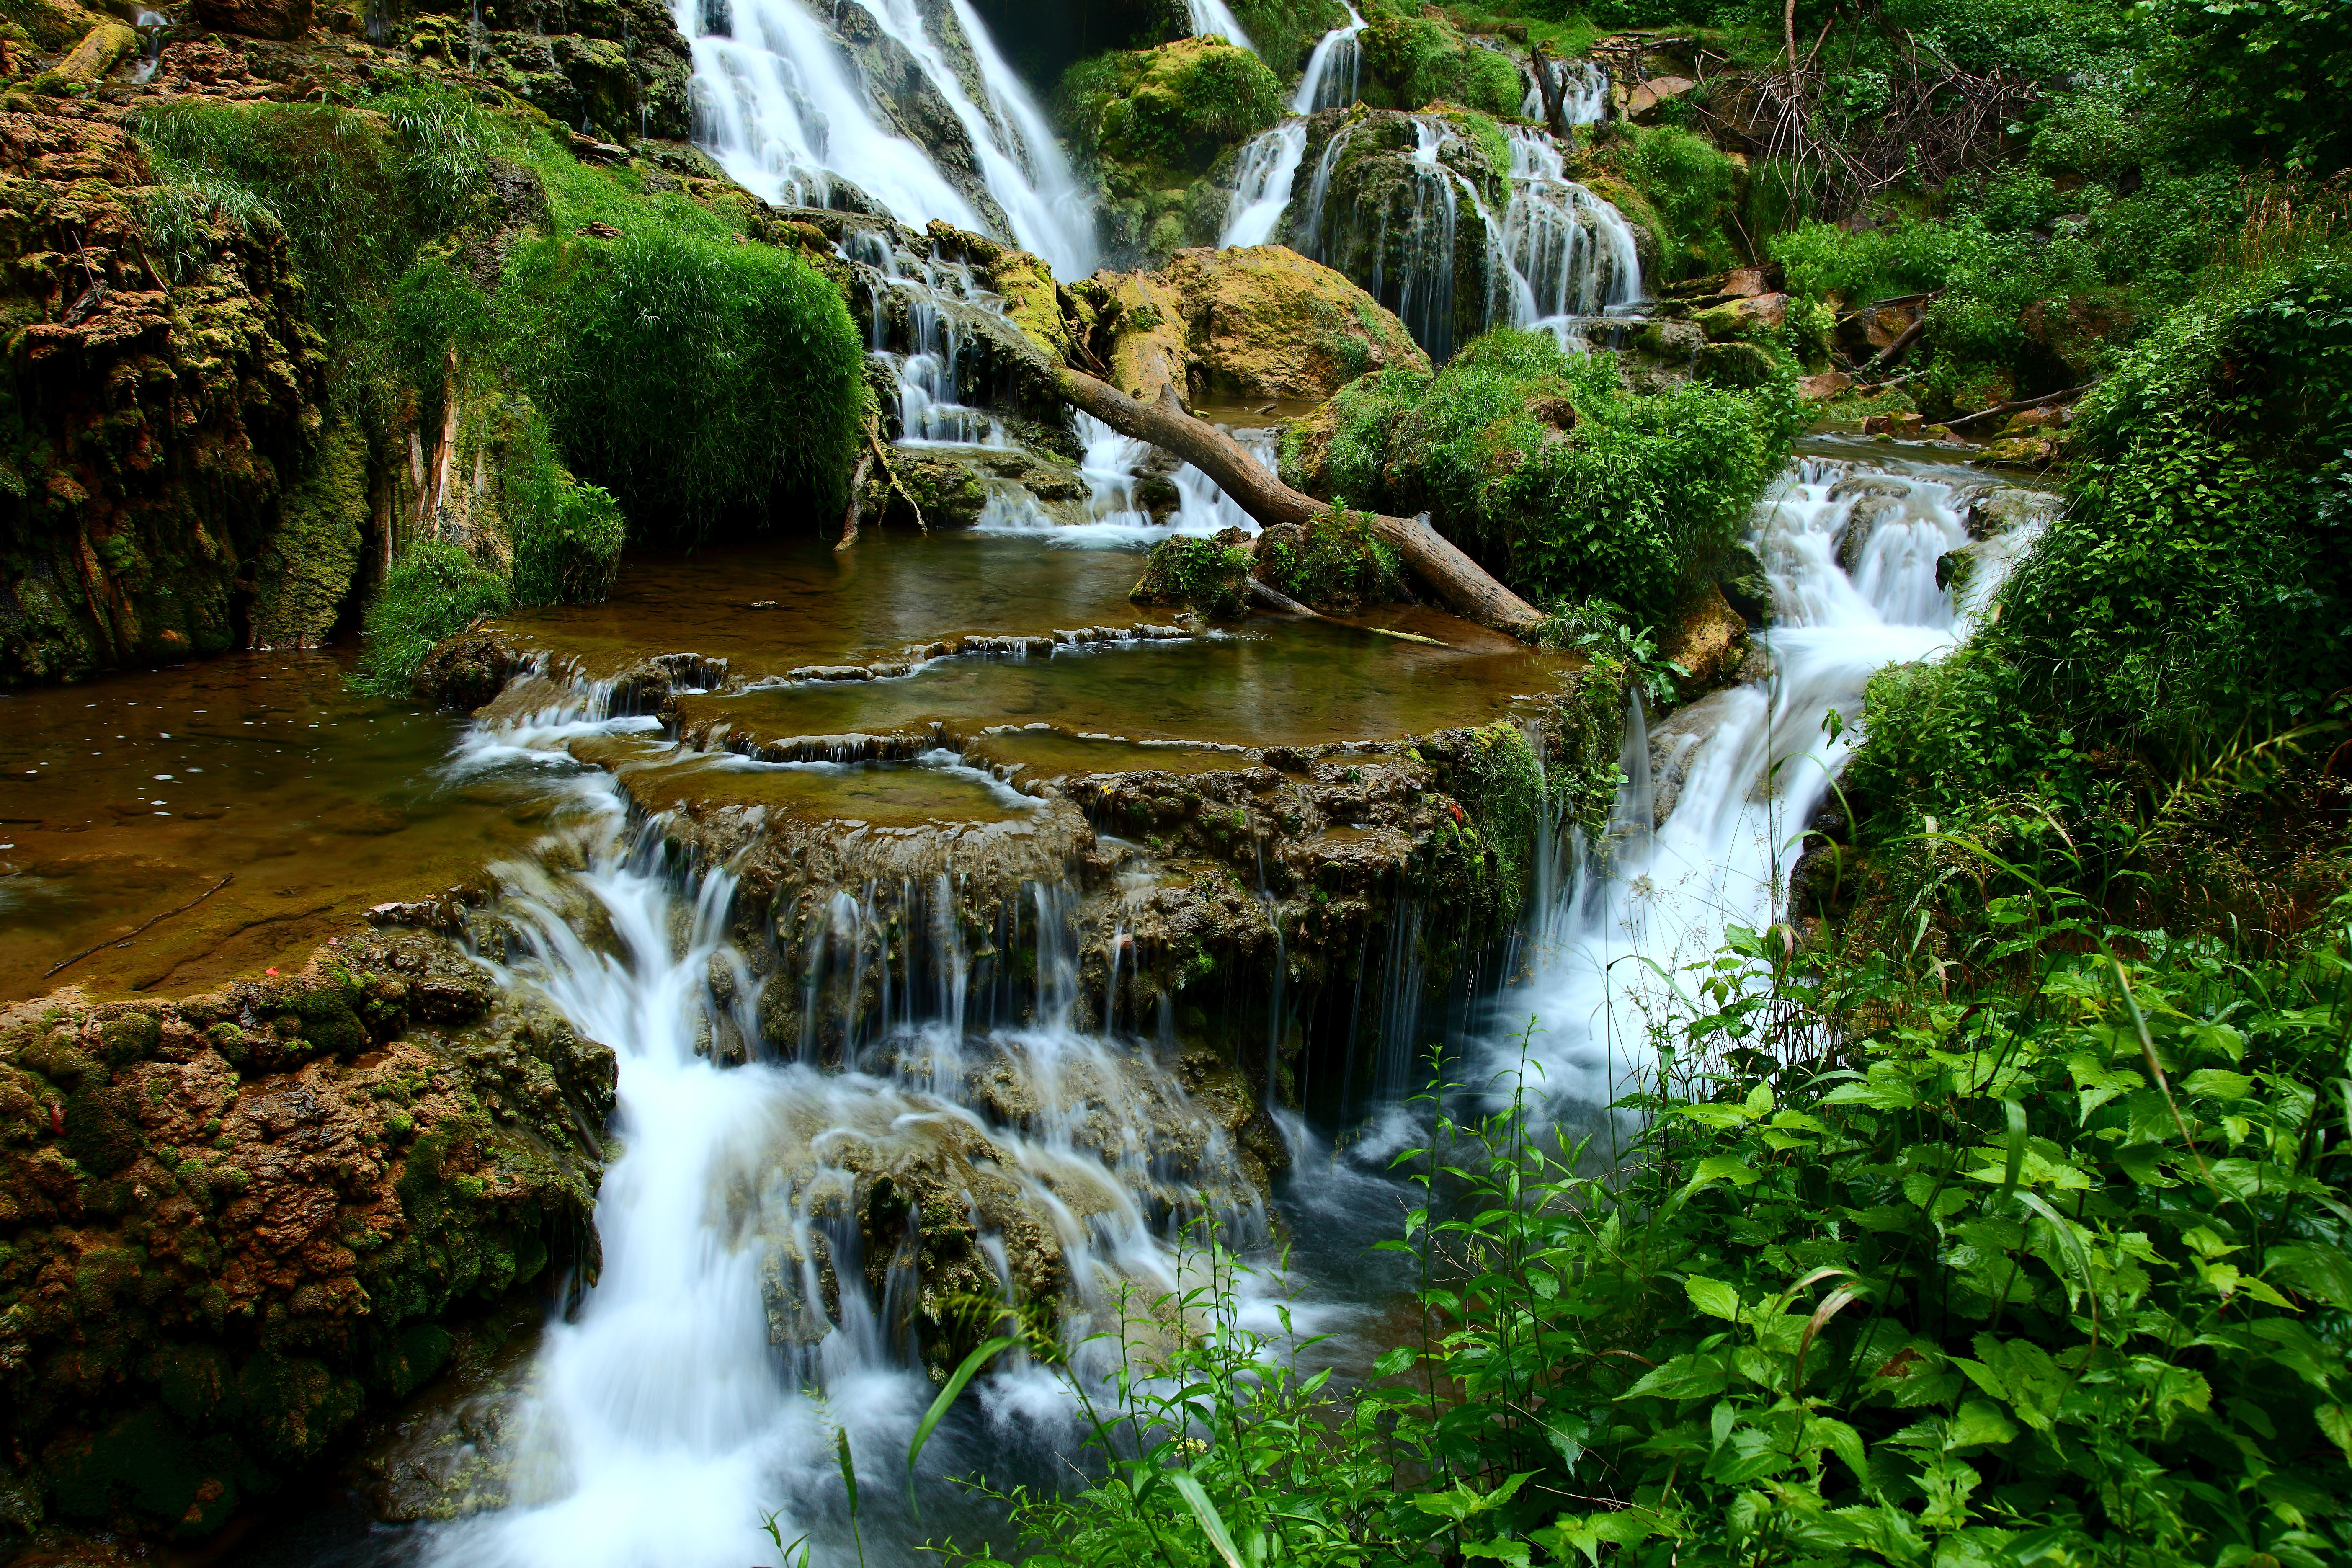 Description Waterfalls-forest-landscape - Virginia - ForestWander.jpg